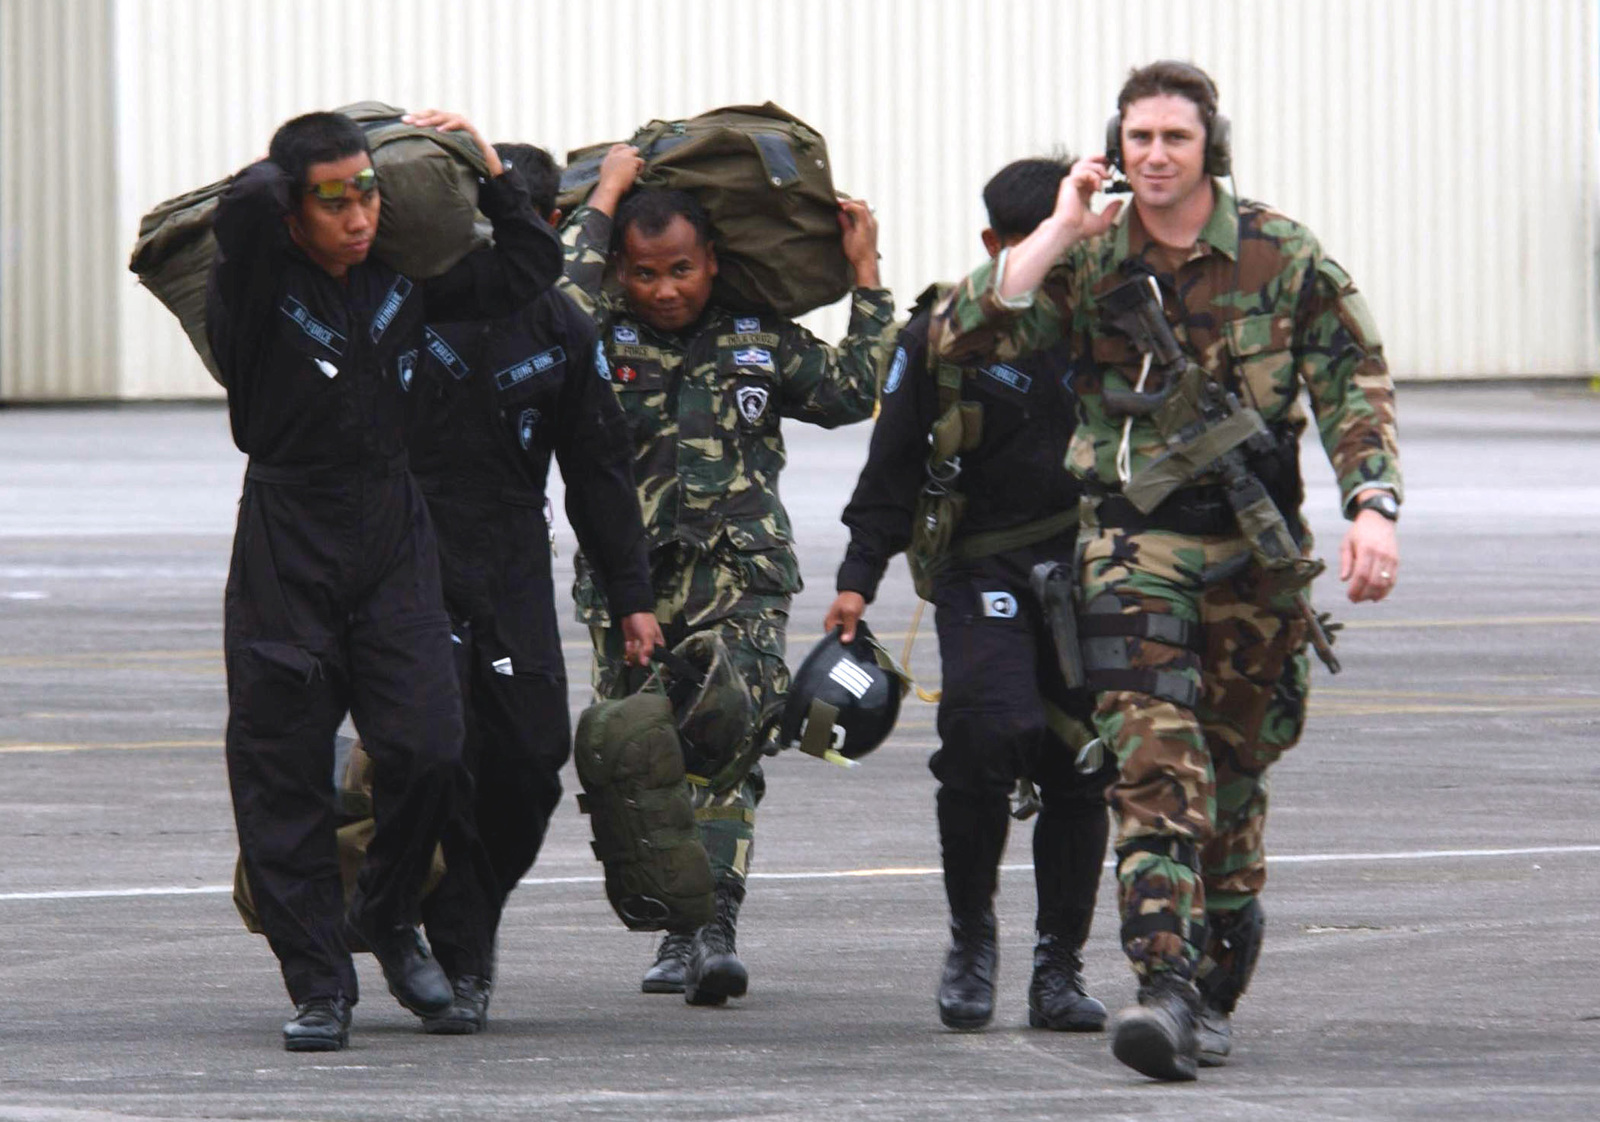 US Air Force (USAF) STAFF Sergeant (SSGT) Michael Paulson (right), Combat Controller, 320th Special Tactics Squadron (STS), Kadena Air Base (AB), Japan, together with members of the Philippine Air Force (PAF) heads toward their aircraft for a joint parachute training during exercise BALANCE PISTON 03-5. The joint exercise is designed to improve the interoperability and tactical proficiency of the armed forces of the US and Philippines